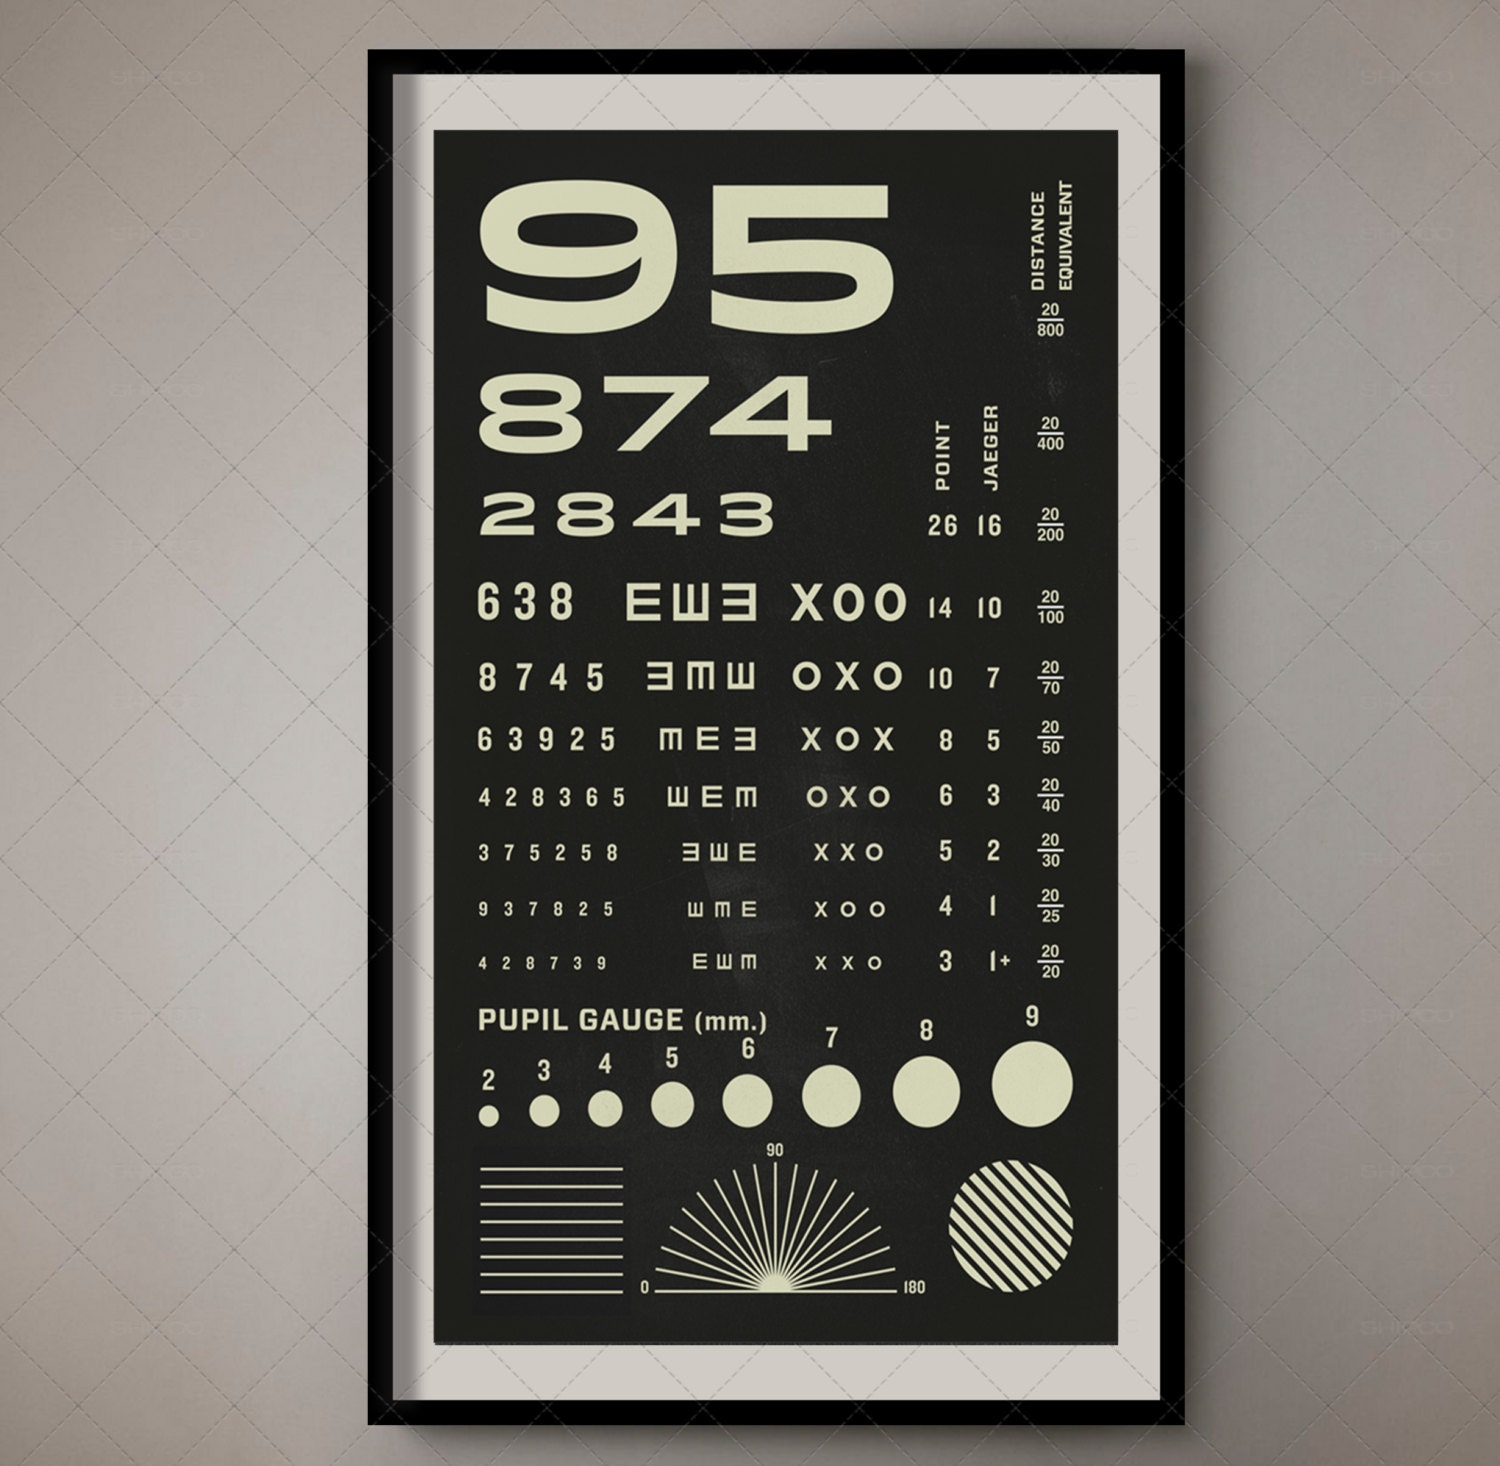 Rosenbaum eye chart pocket vision test for optometrists zoom geenschuldenfo Image collections